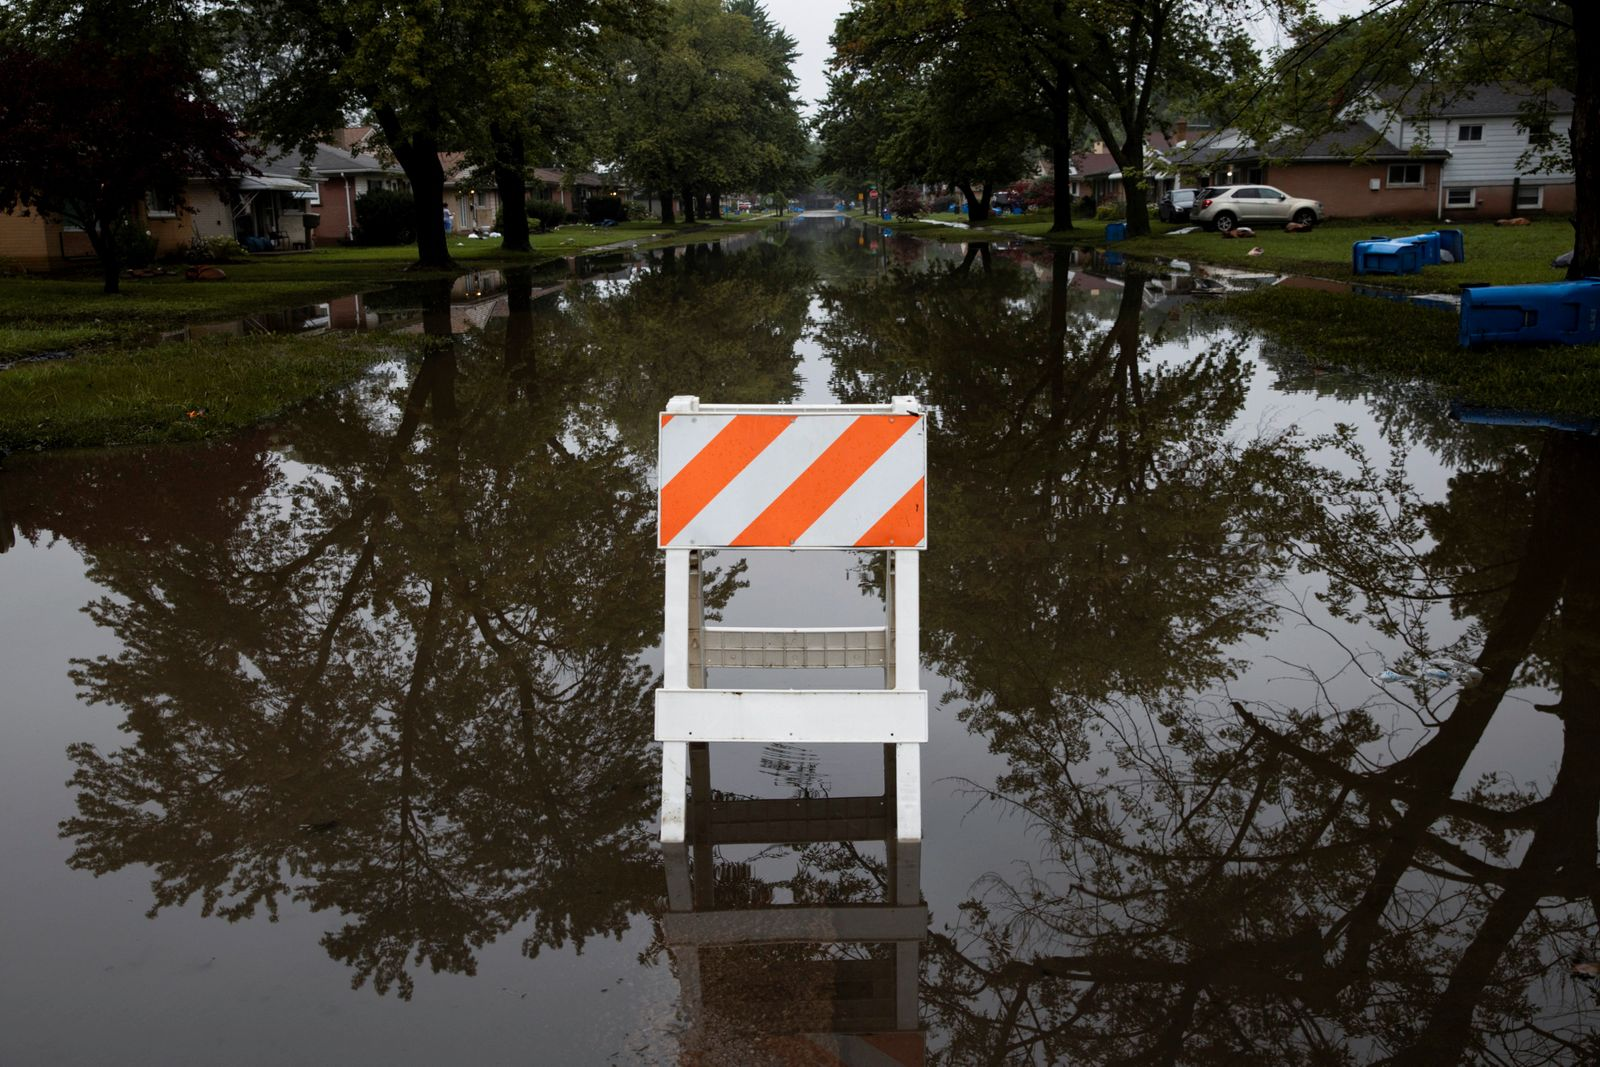 Severe flooding caused by heavy rain in Dearborn Heights